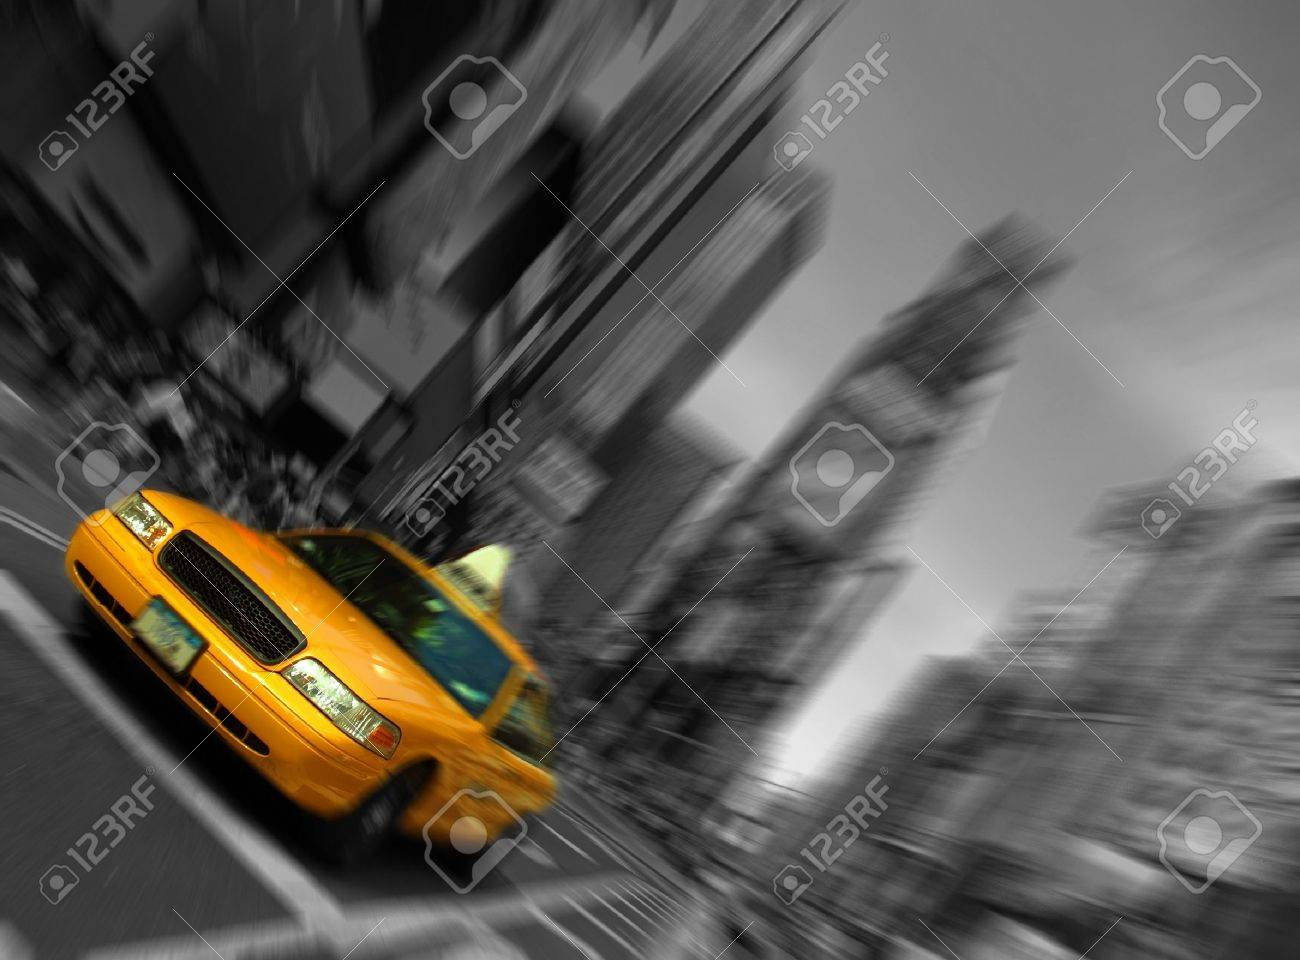 new york city, times square, taxi focus motion blur - 13368665